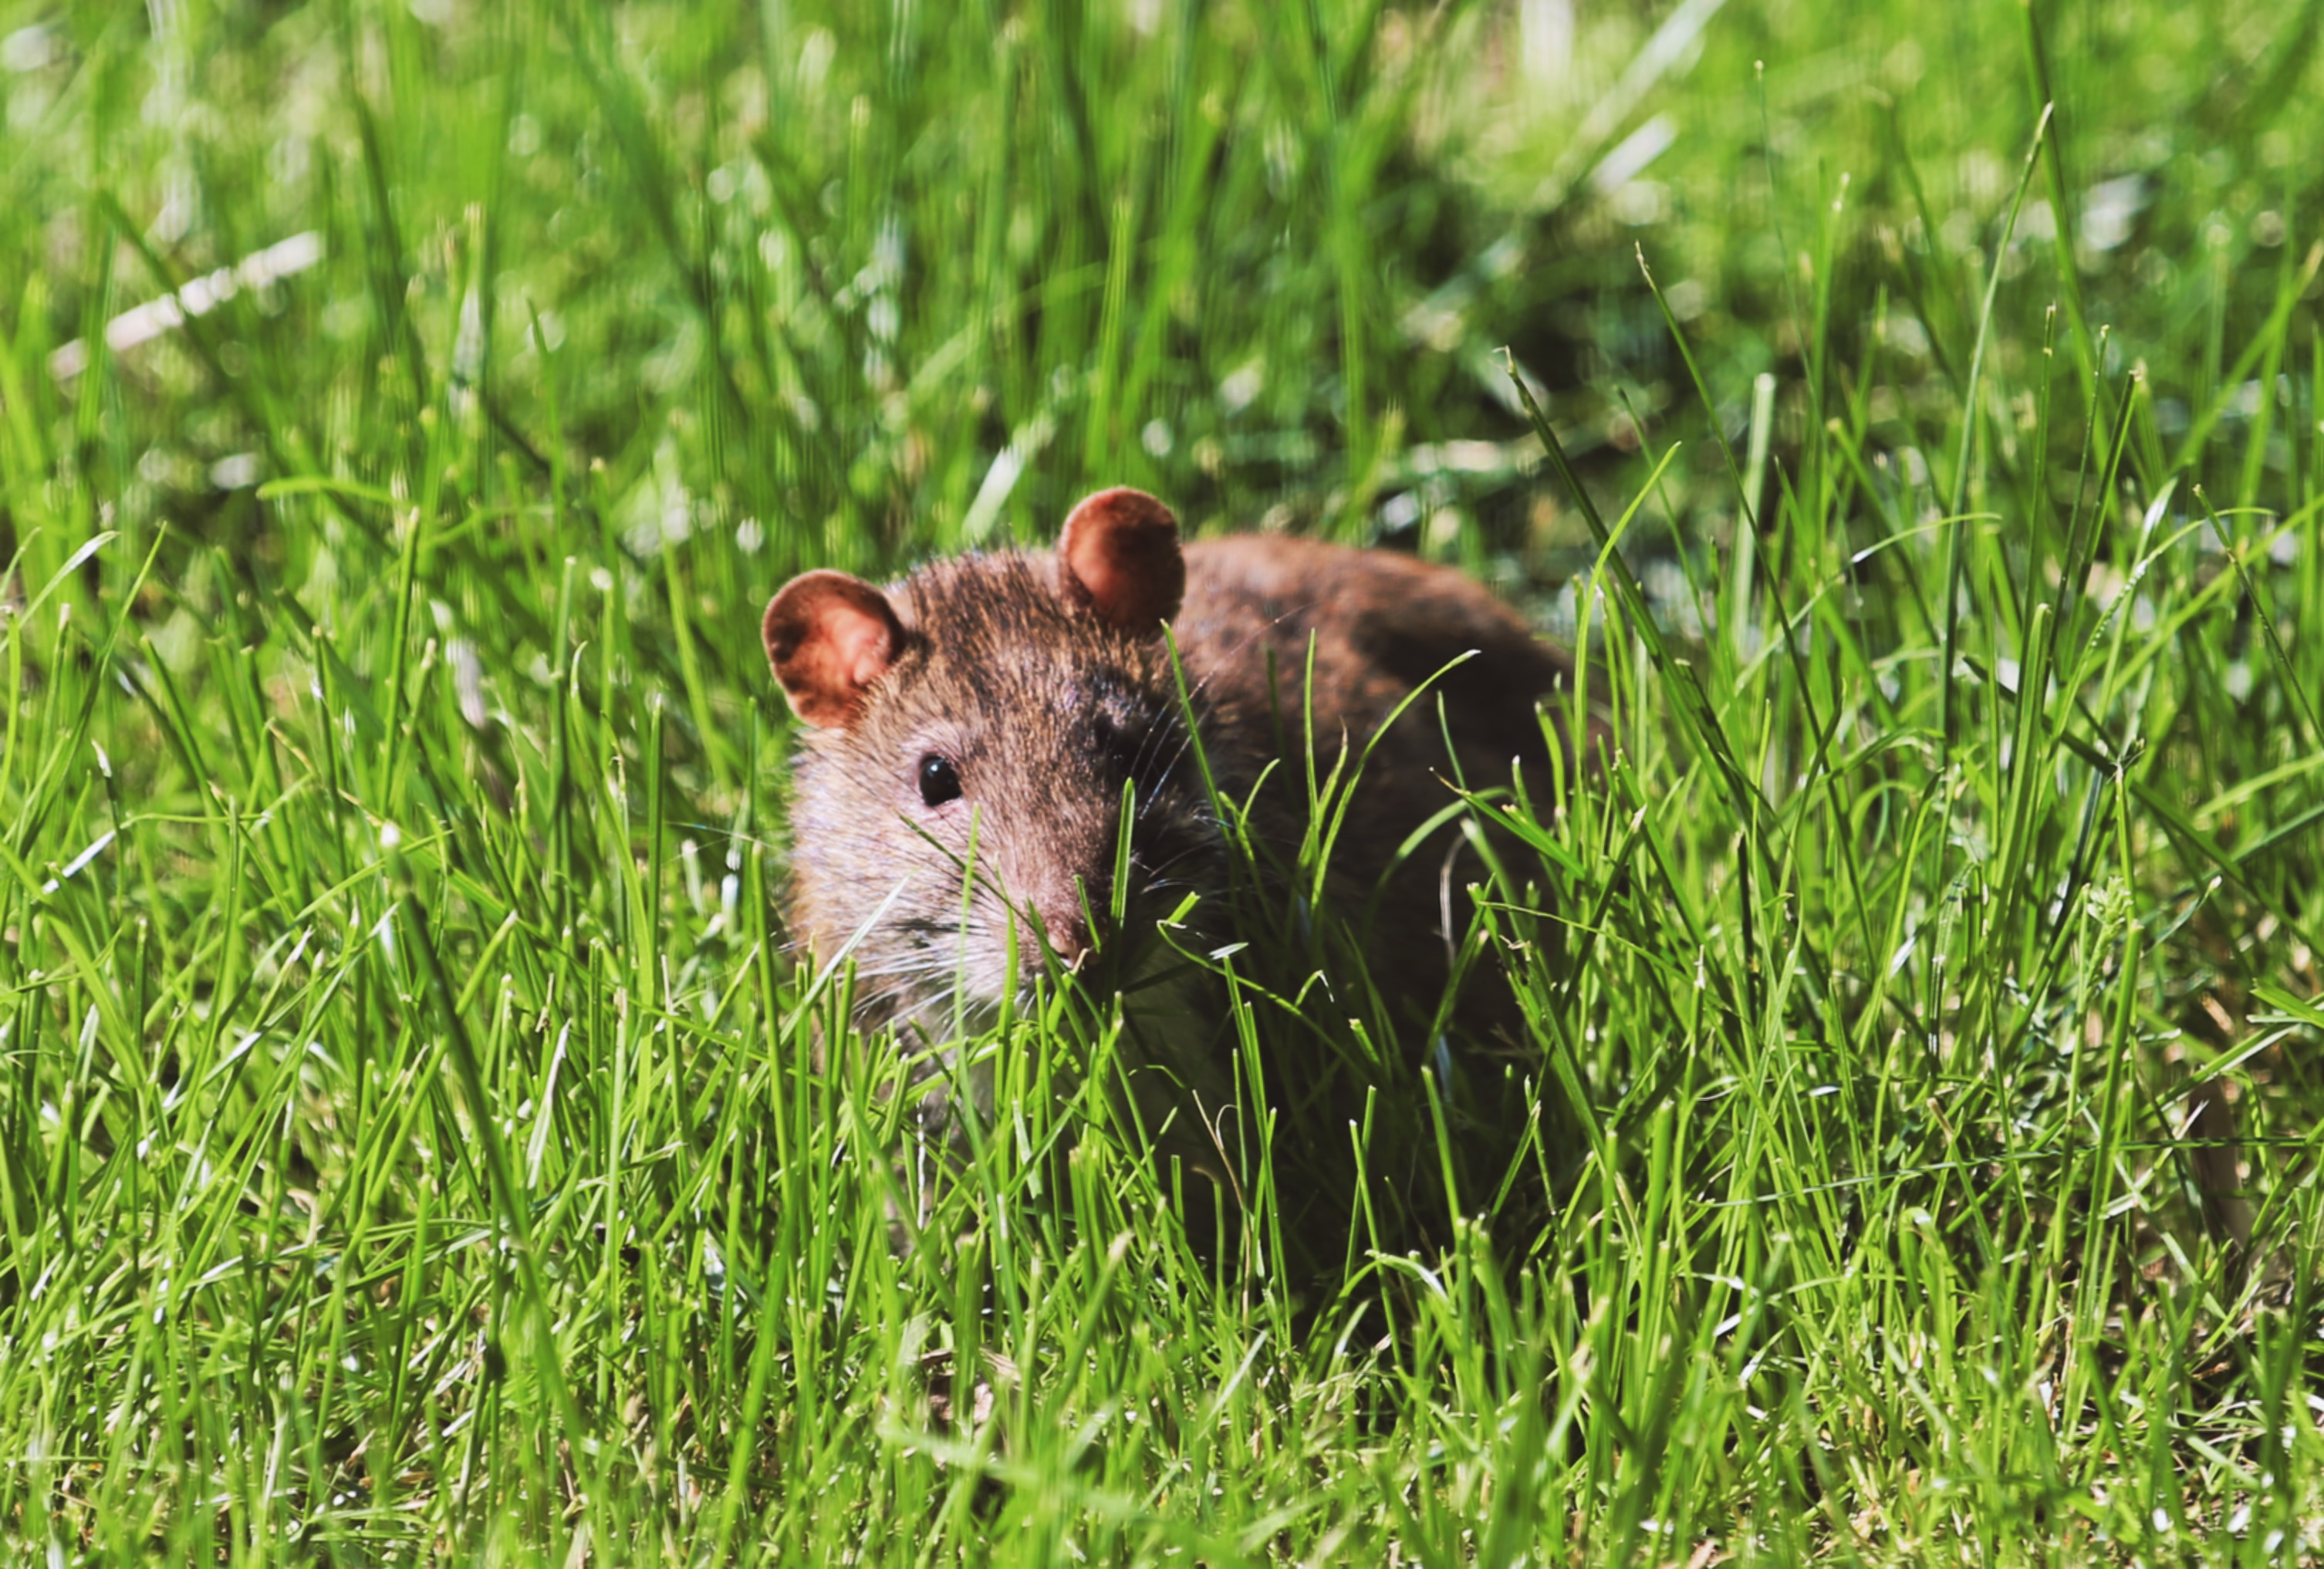 95546 download wallpaper Animals, Mouse, Rodent, Grass, Wildlife screensavers and pictures for free